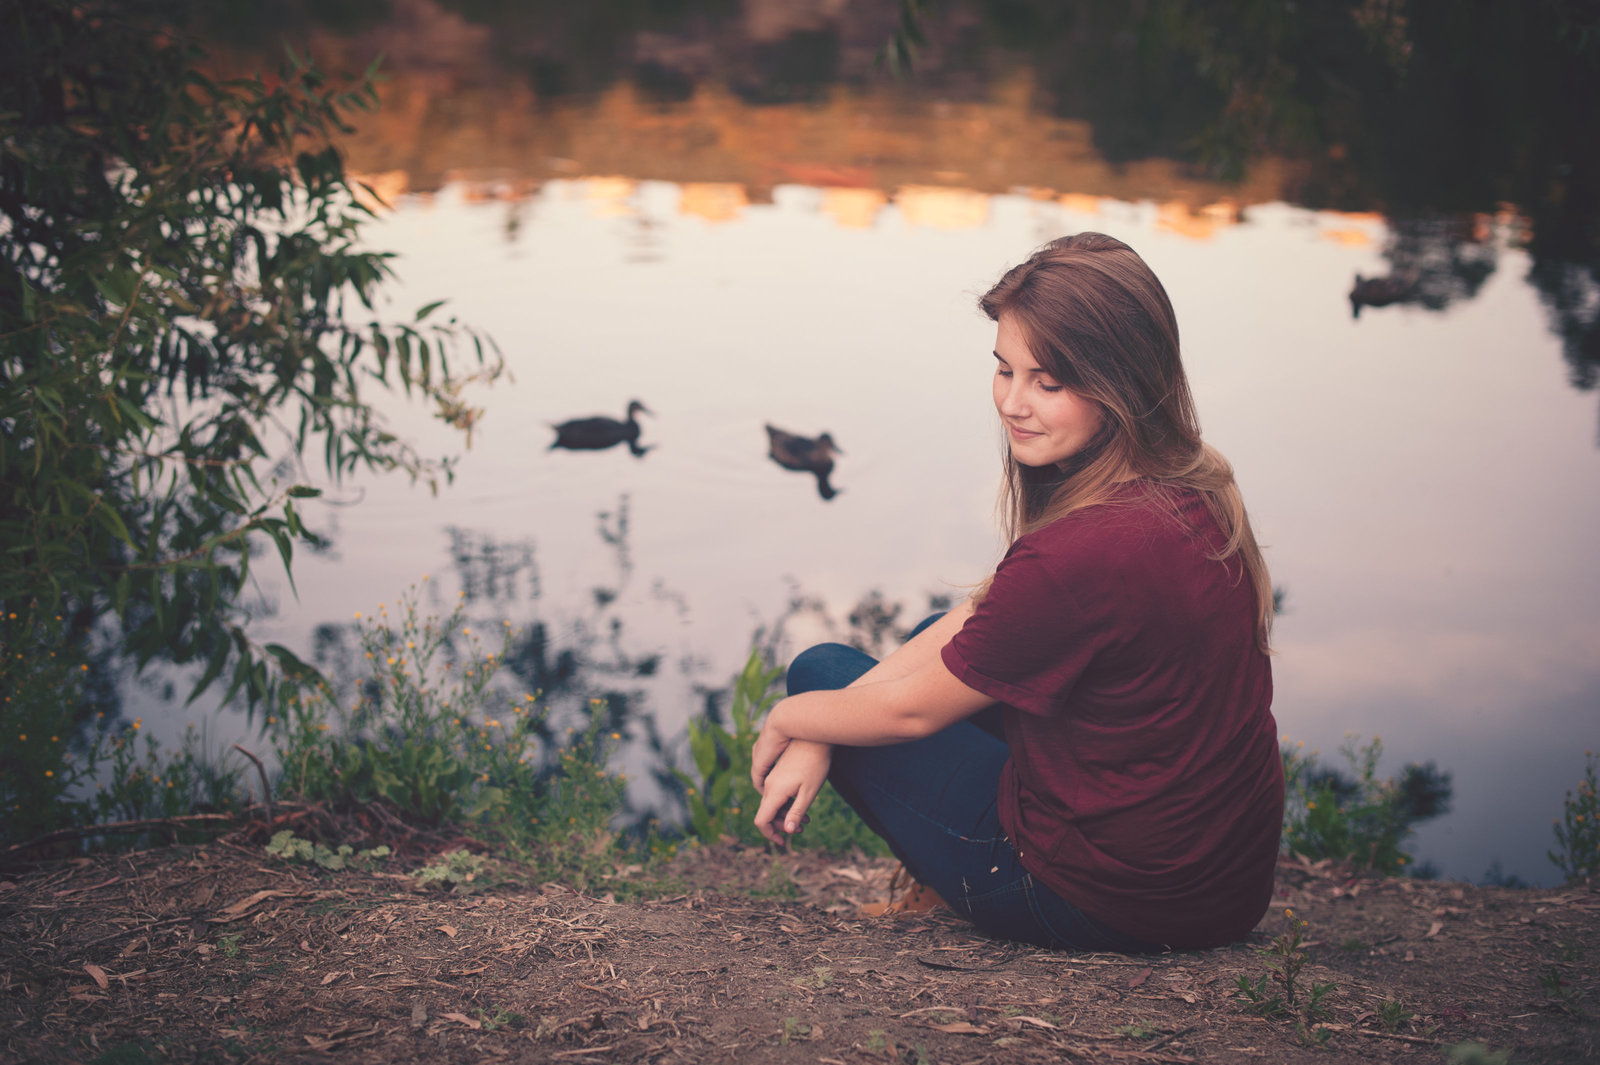 thoughtful teenager sitting by lake with ducks in Laguna Niguel Regional Park